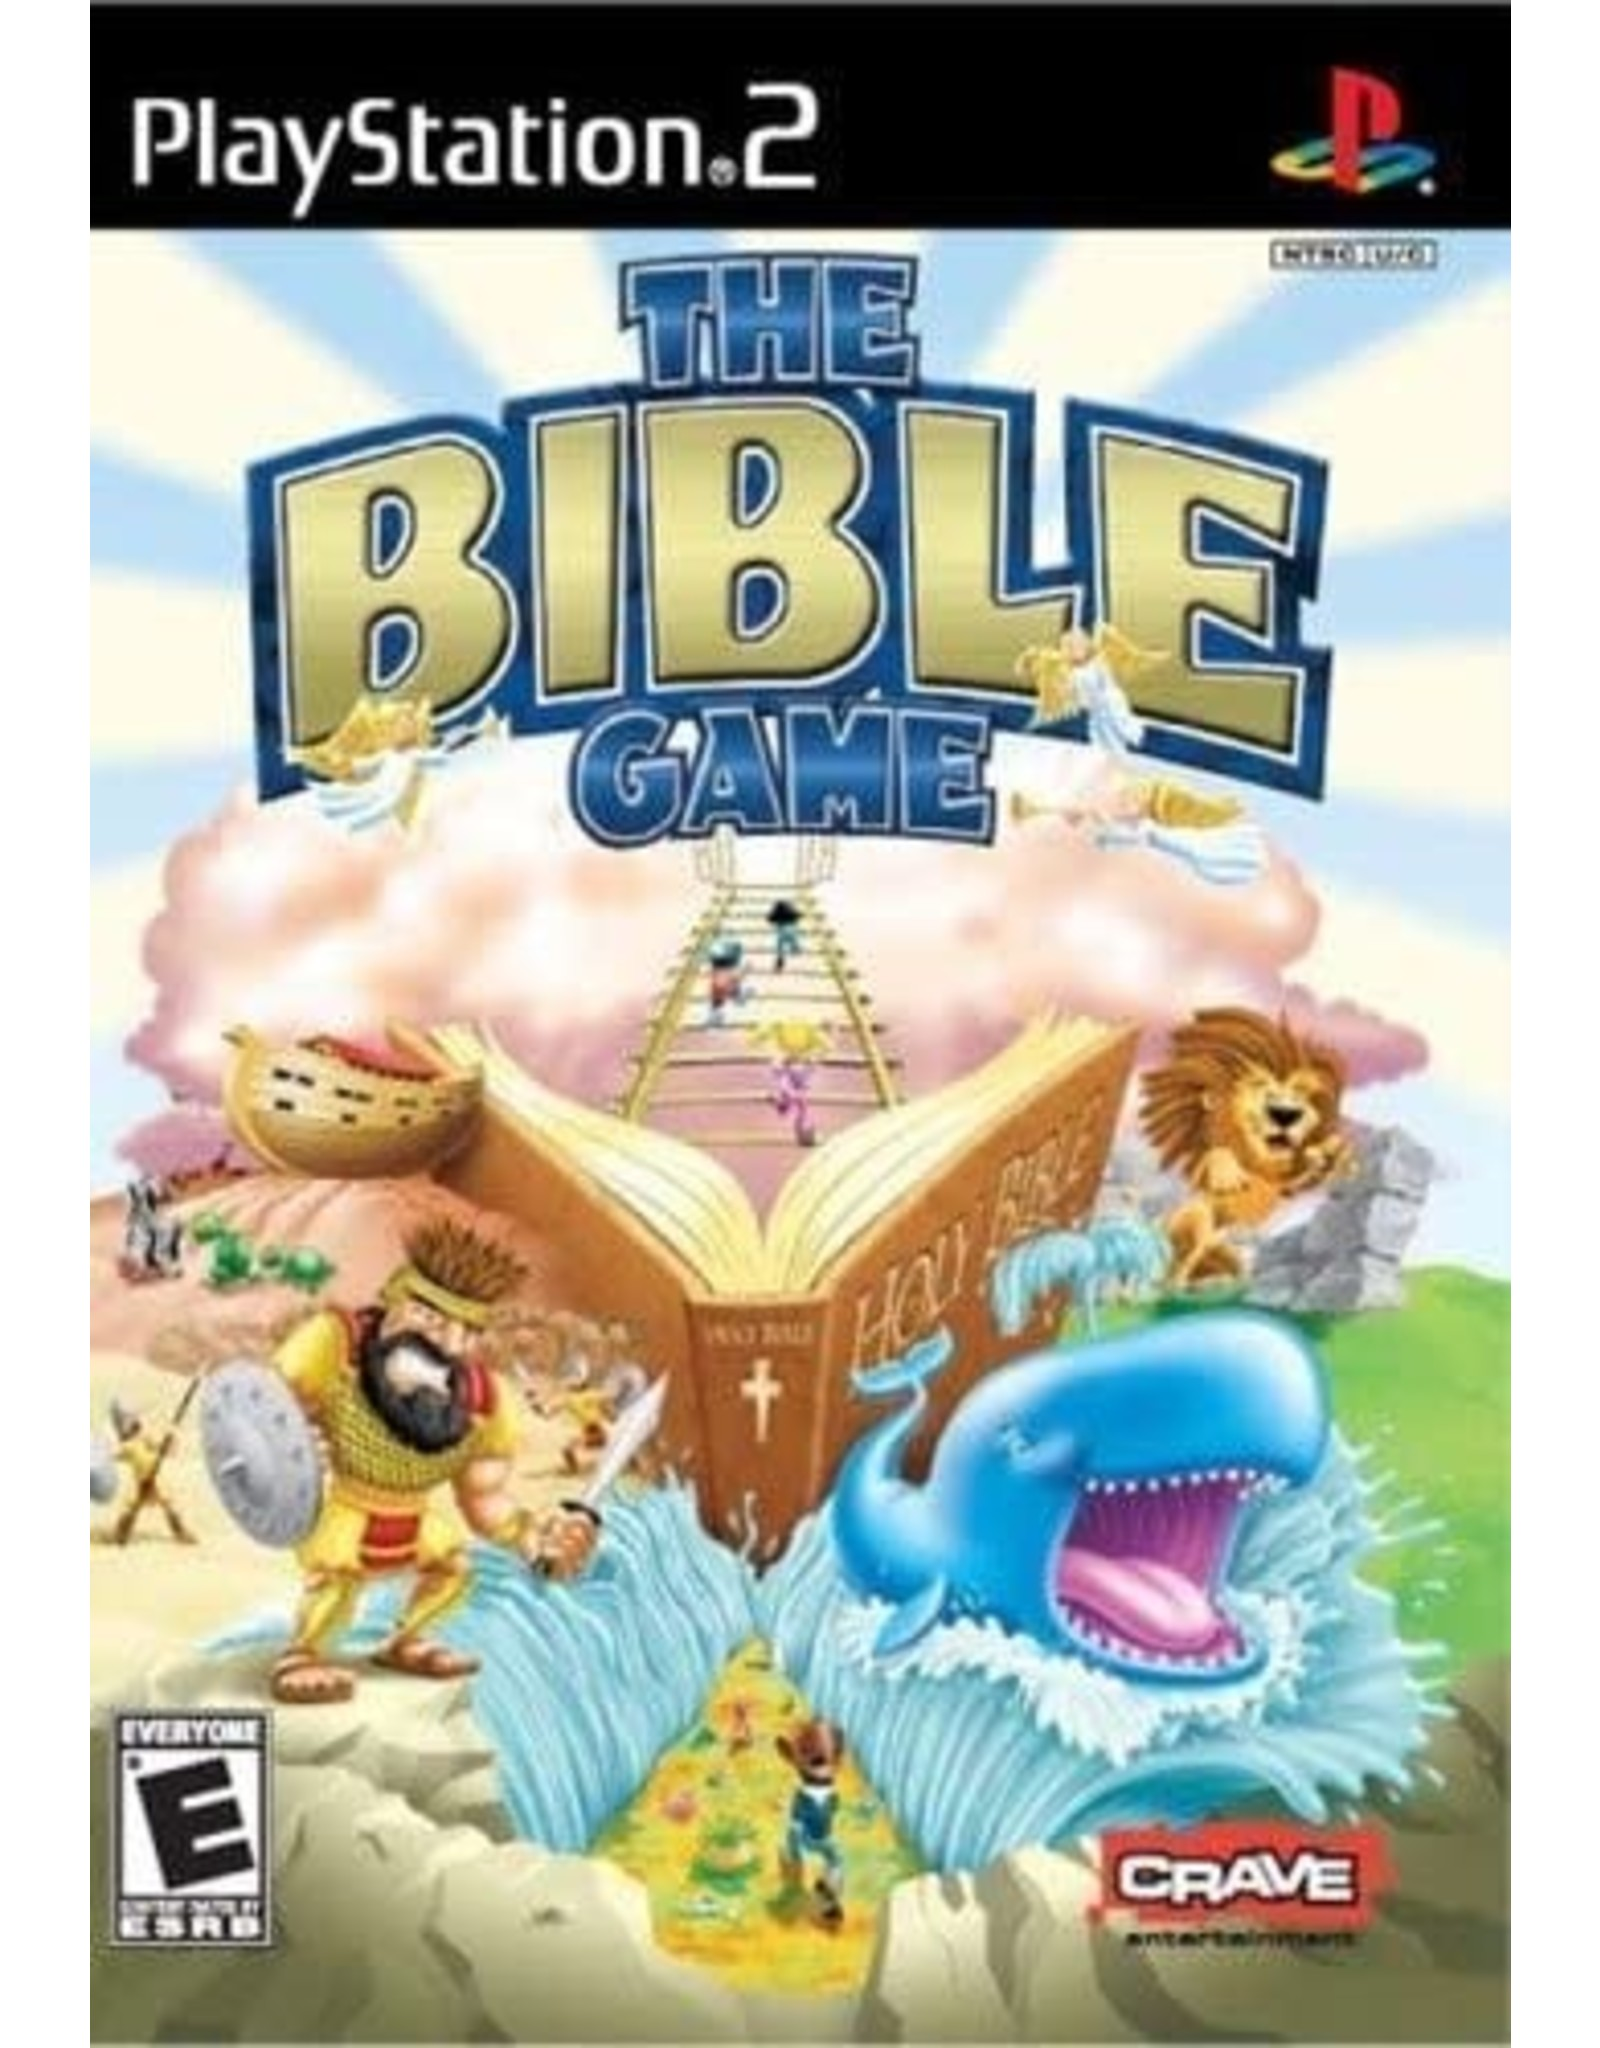 Playstation 2 Bible Game, The (CiB)